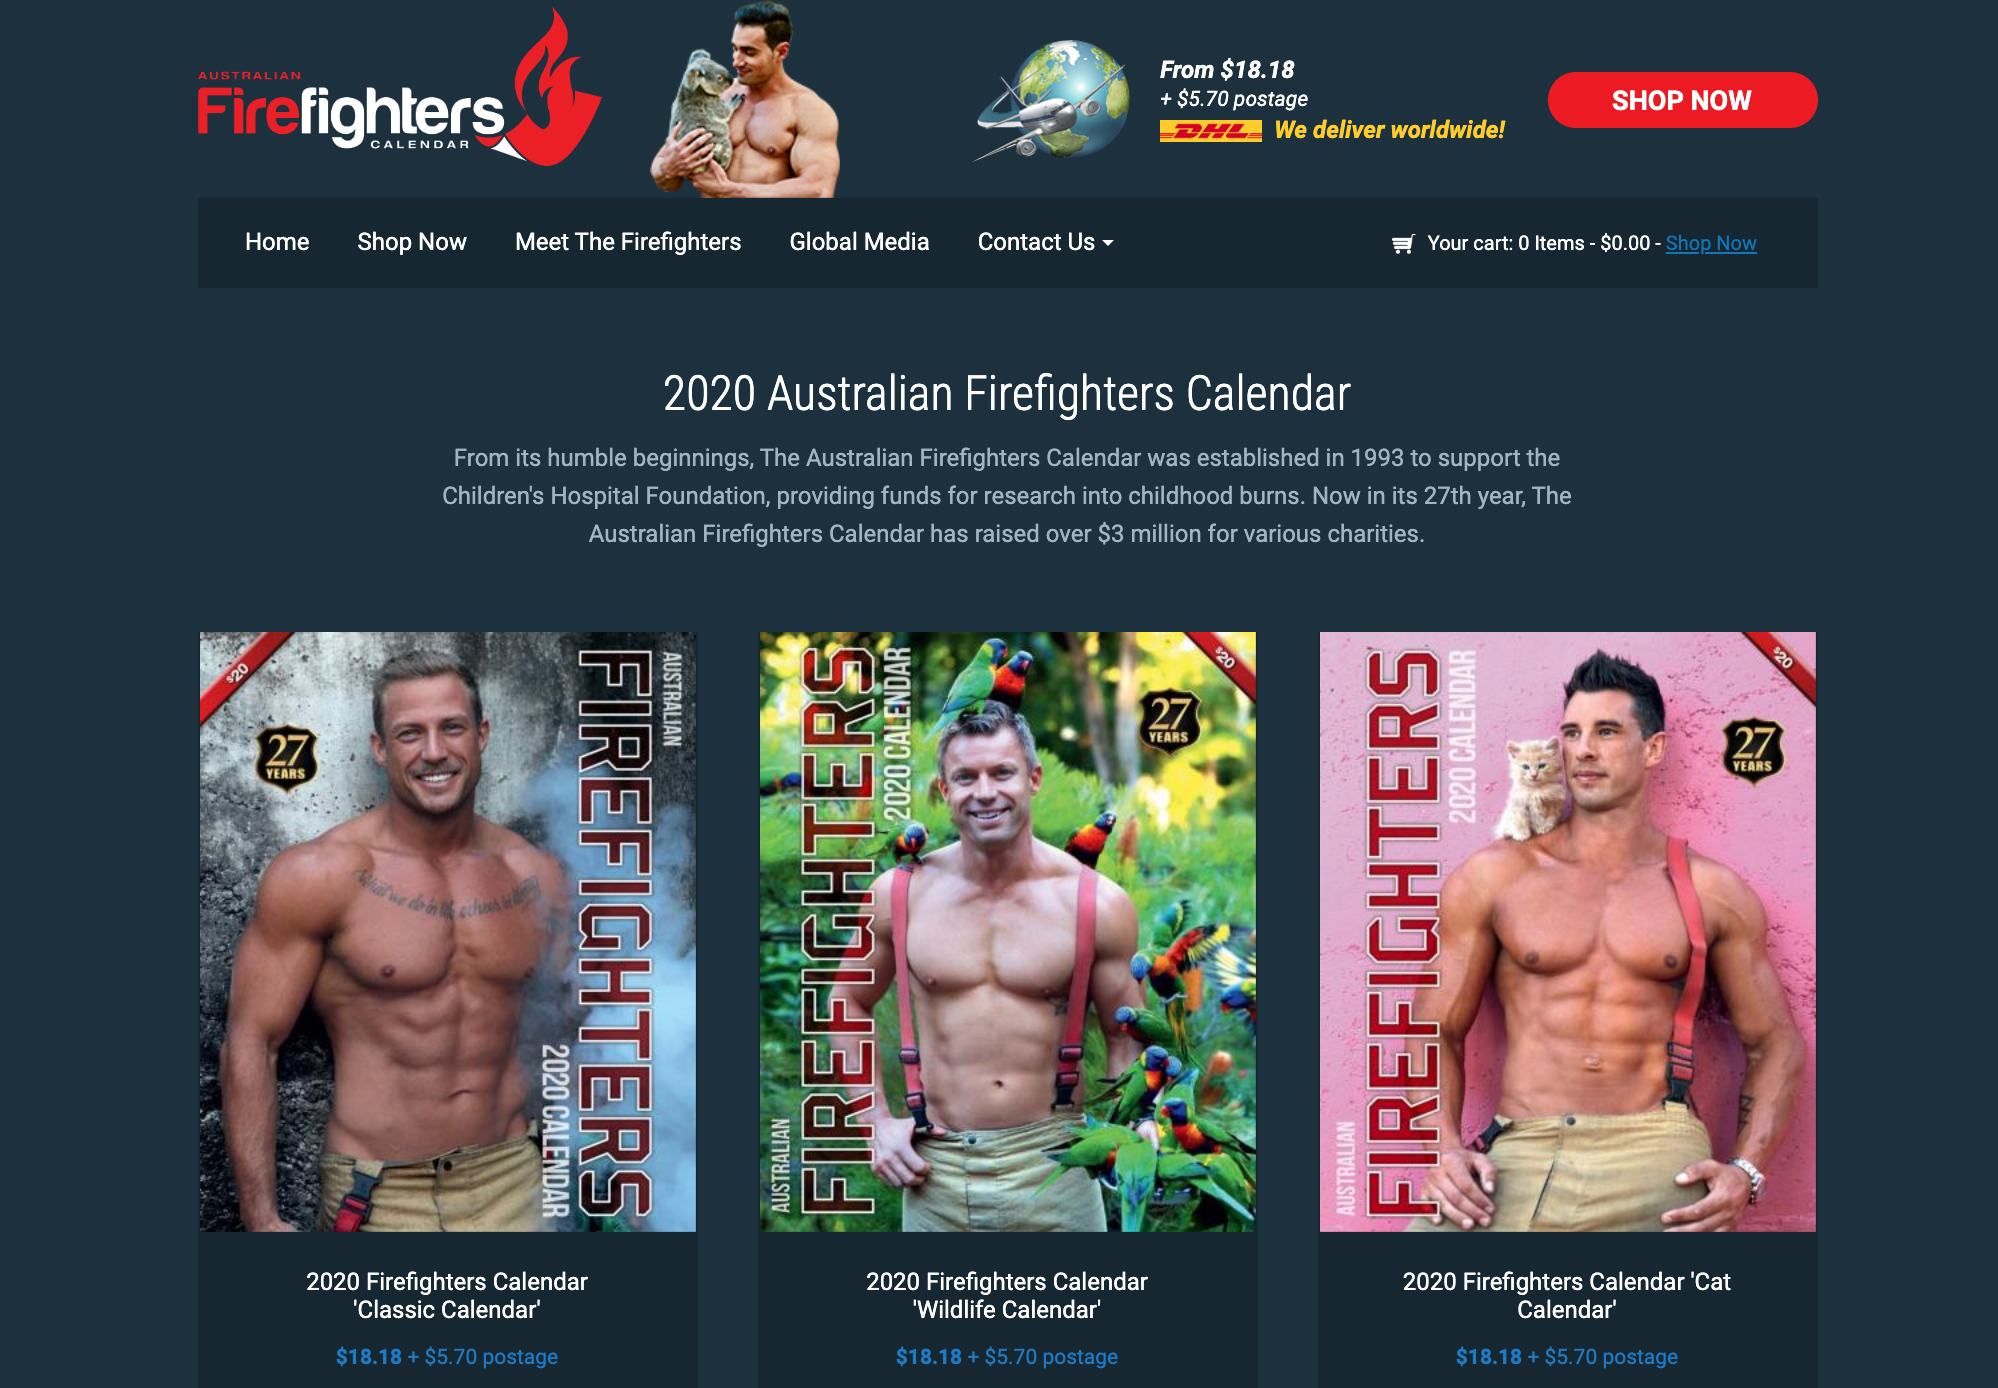 Australian Firefighters 2020 Calendars